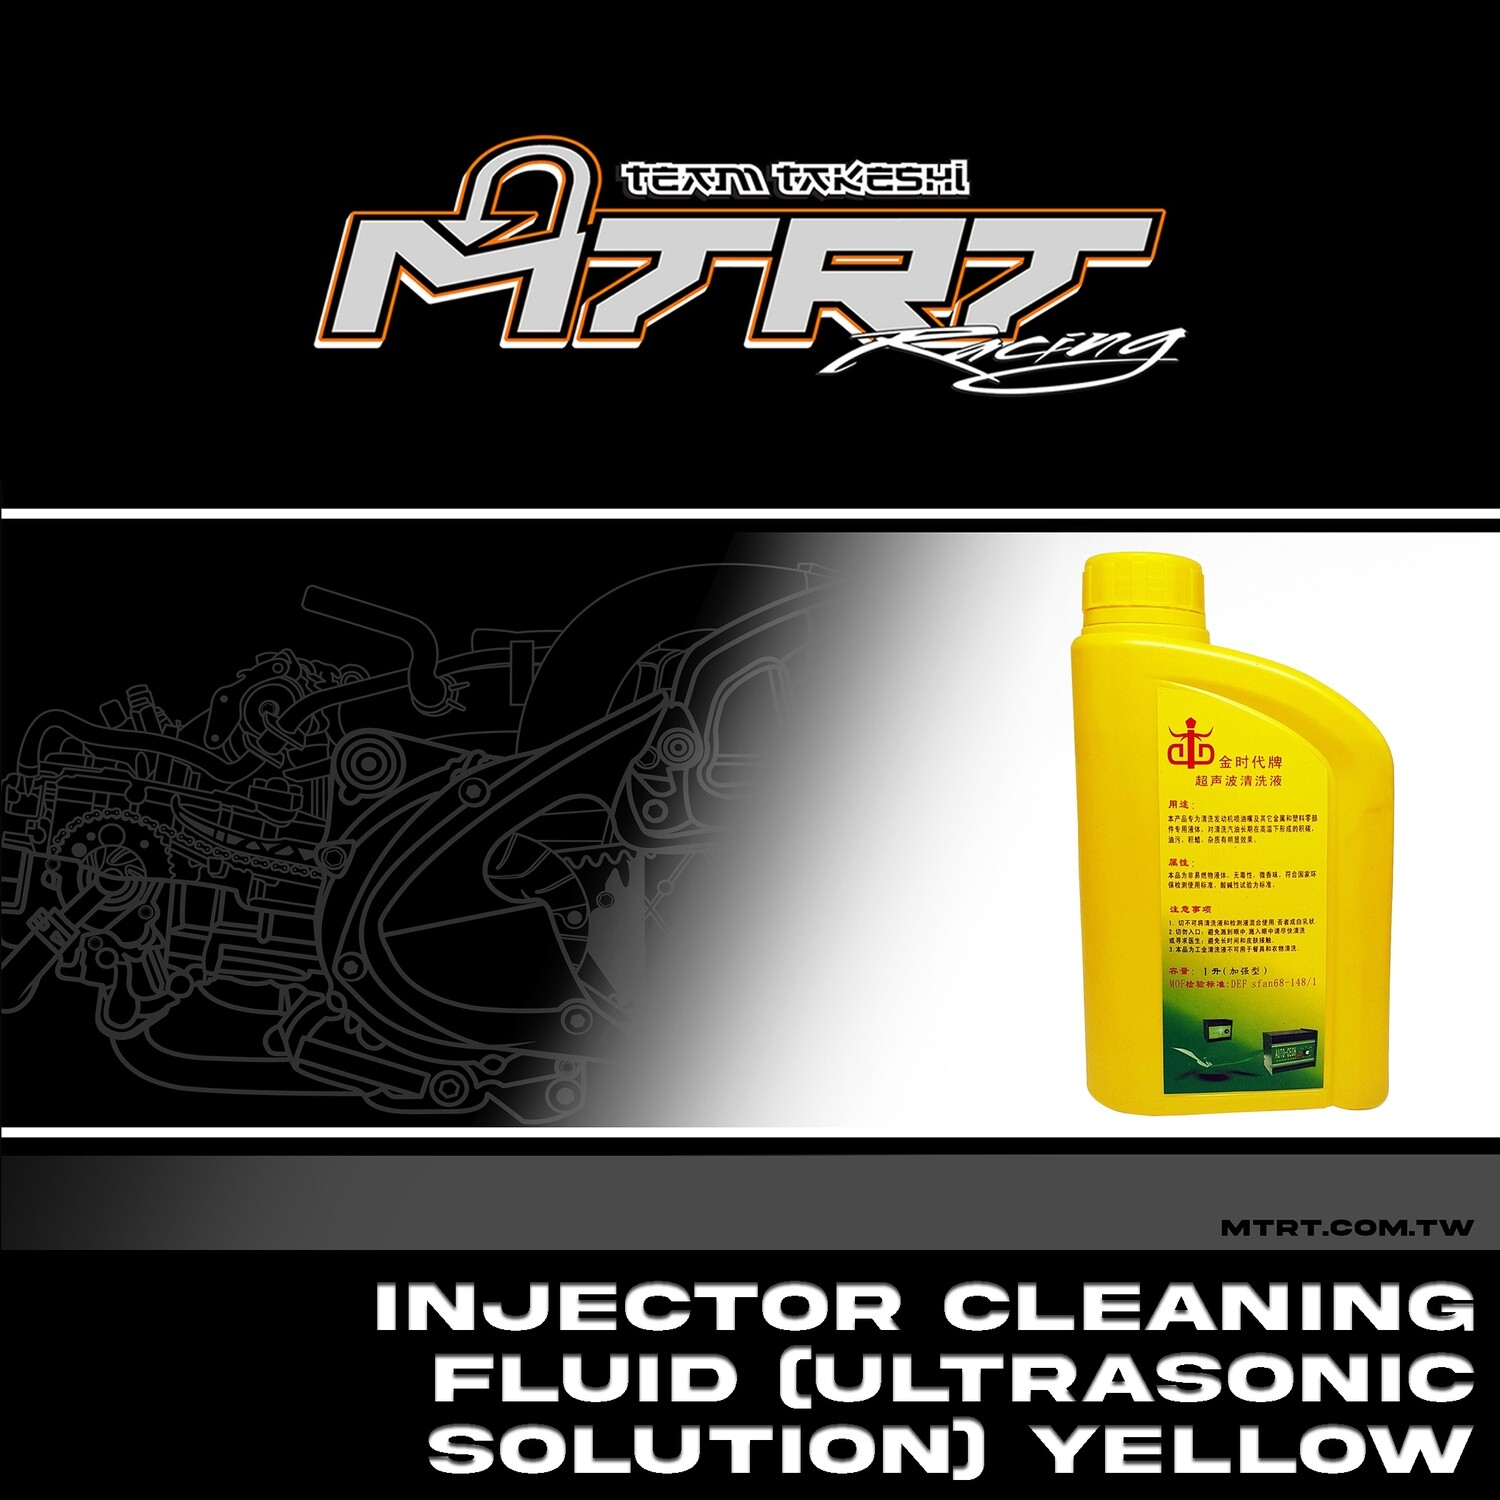 INJECTOR CLEANING FLUID(Ultrasonic solution)YELLOW